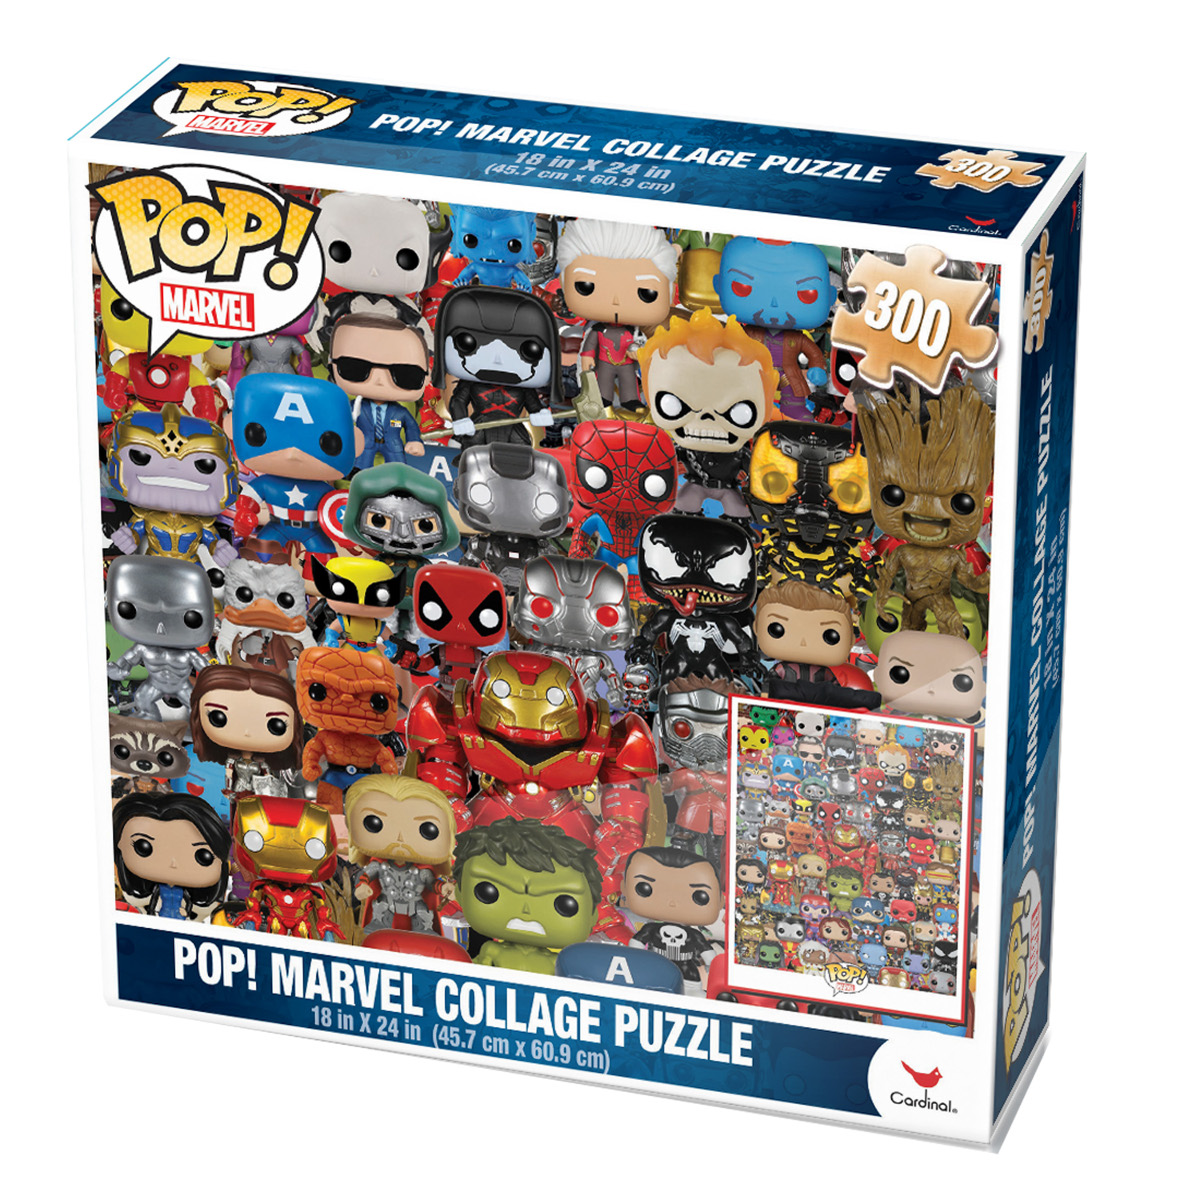 Pop Marvel Collage Puzzle 1000 Pieces Cardinal Ind Puzzle Warehouse